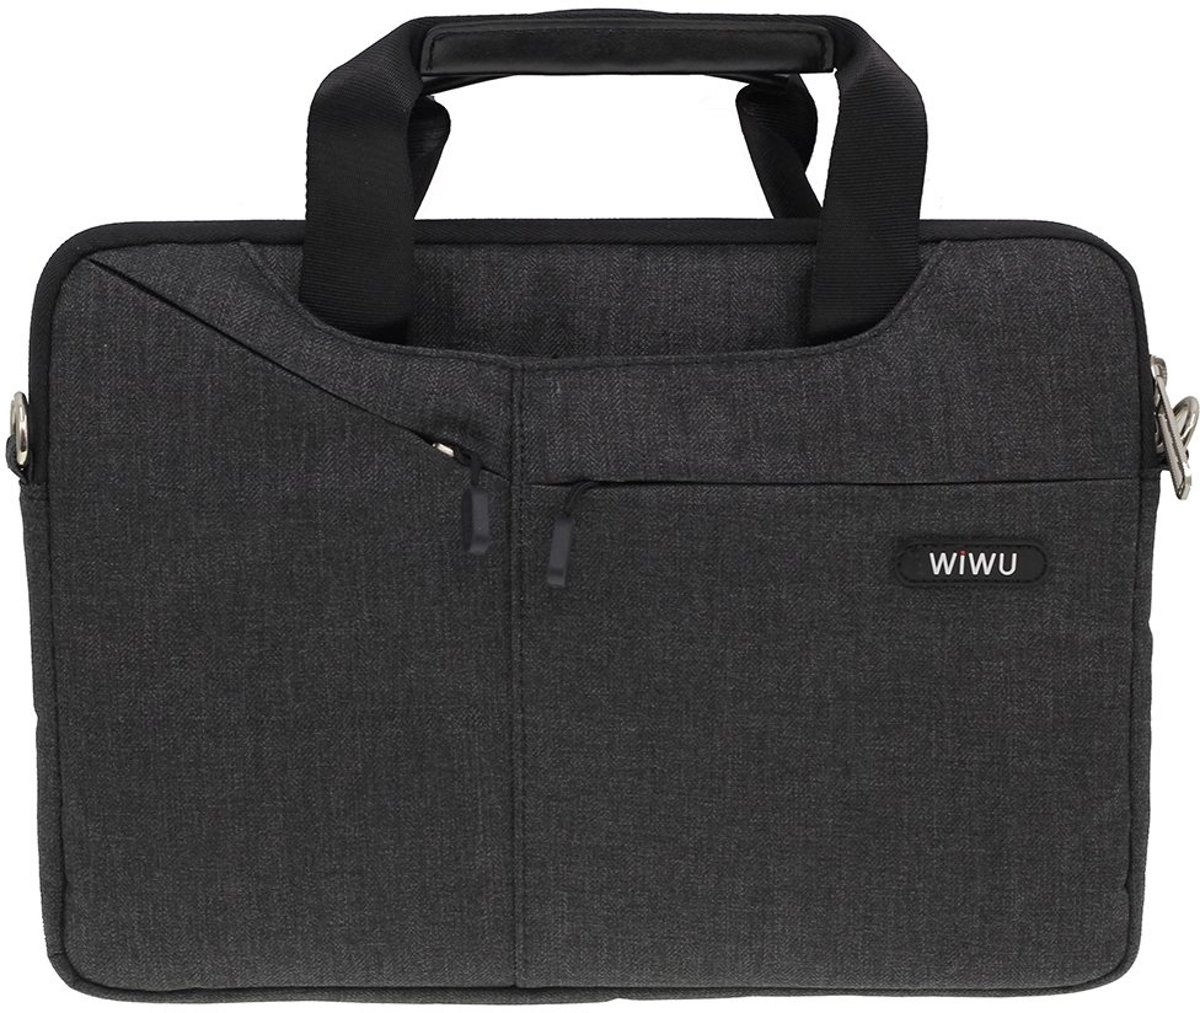 WiWu - 15.4 inch Laptoptas - Elite Zwart